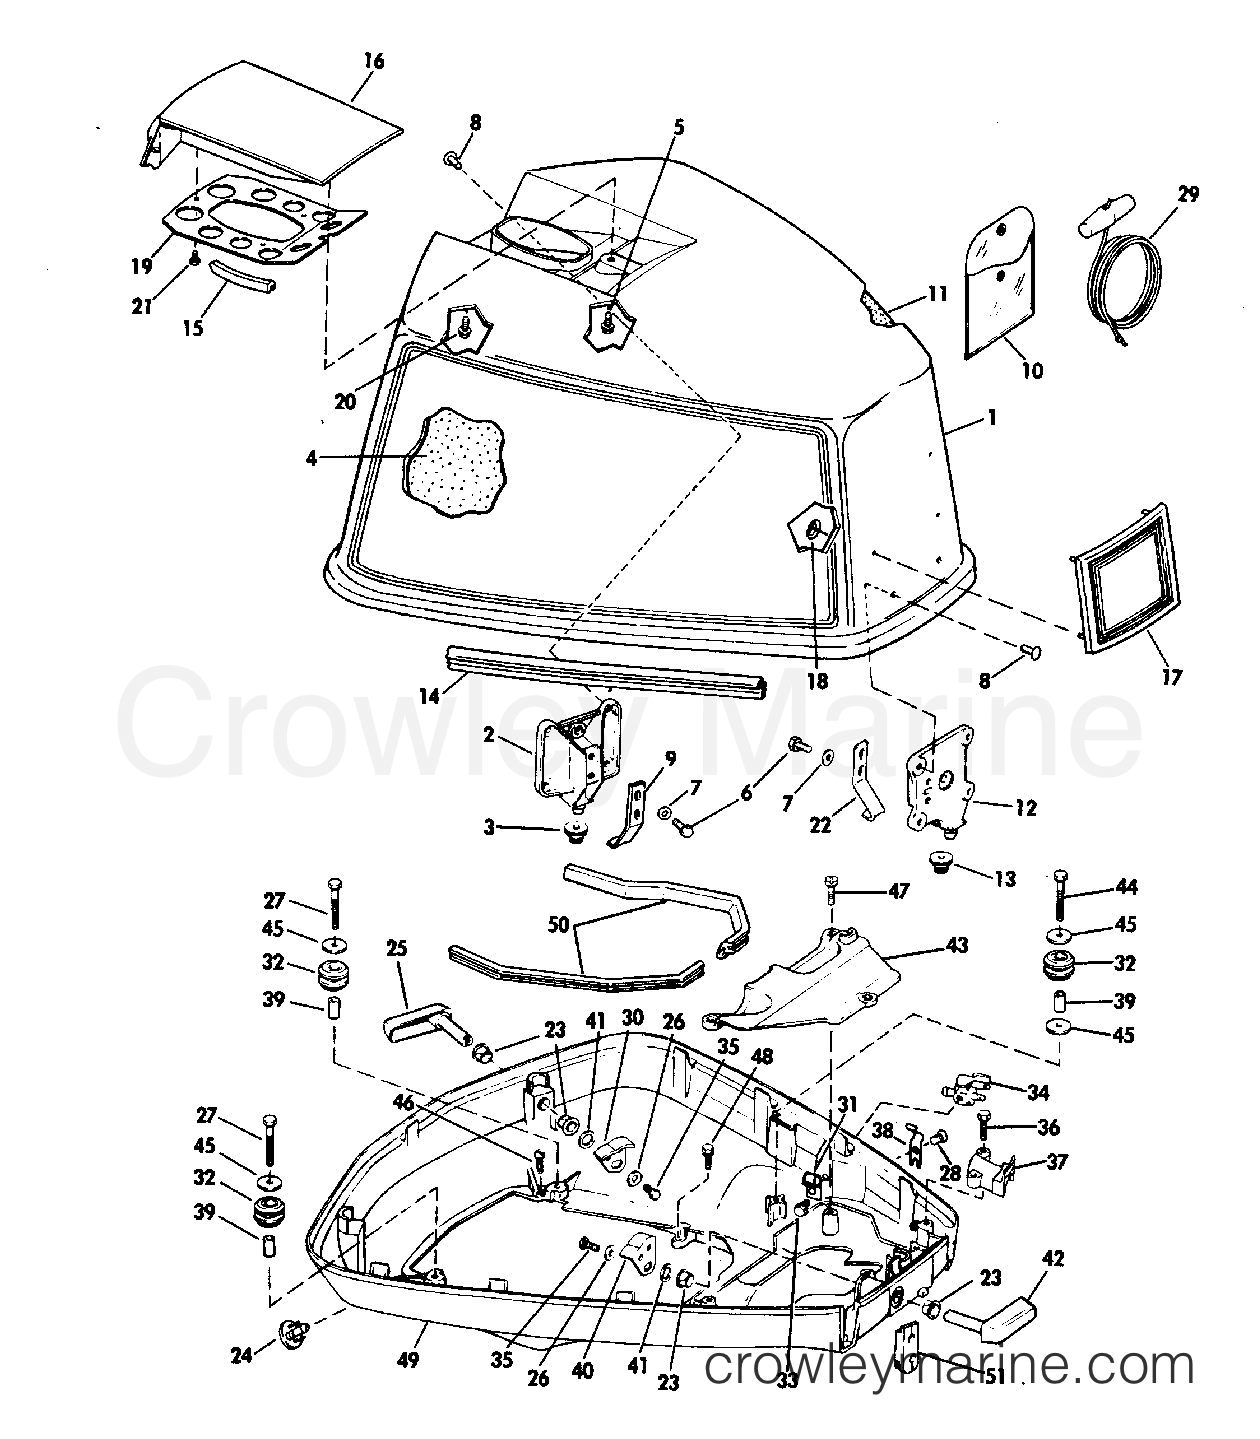 motor cover - johnson